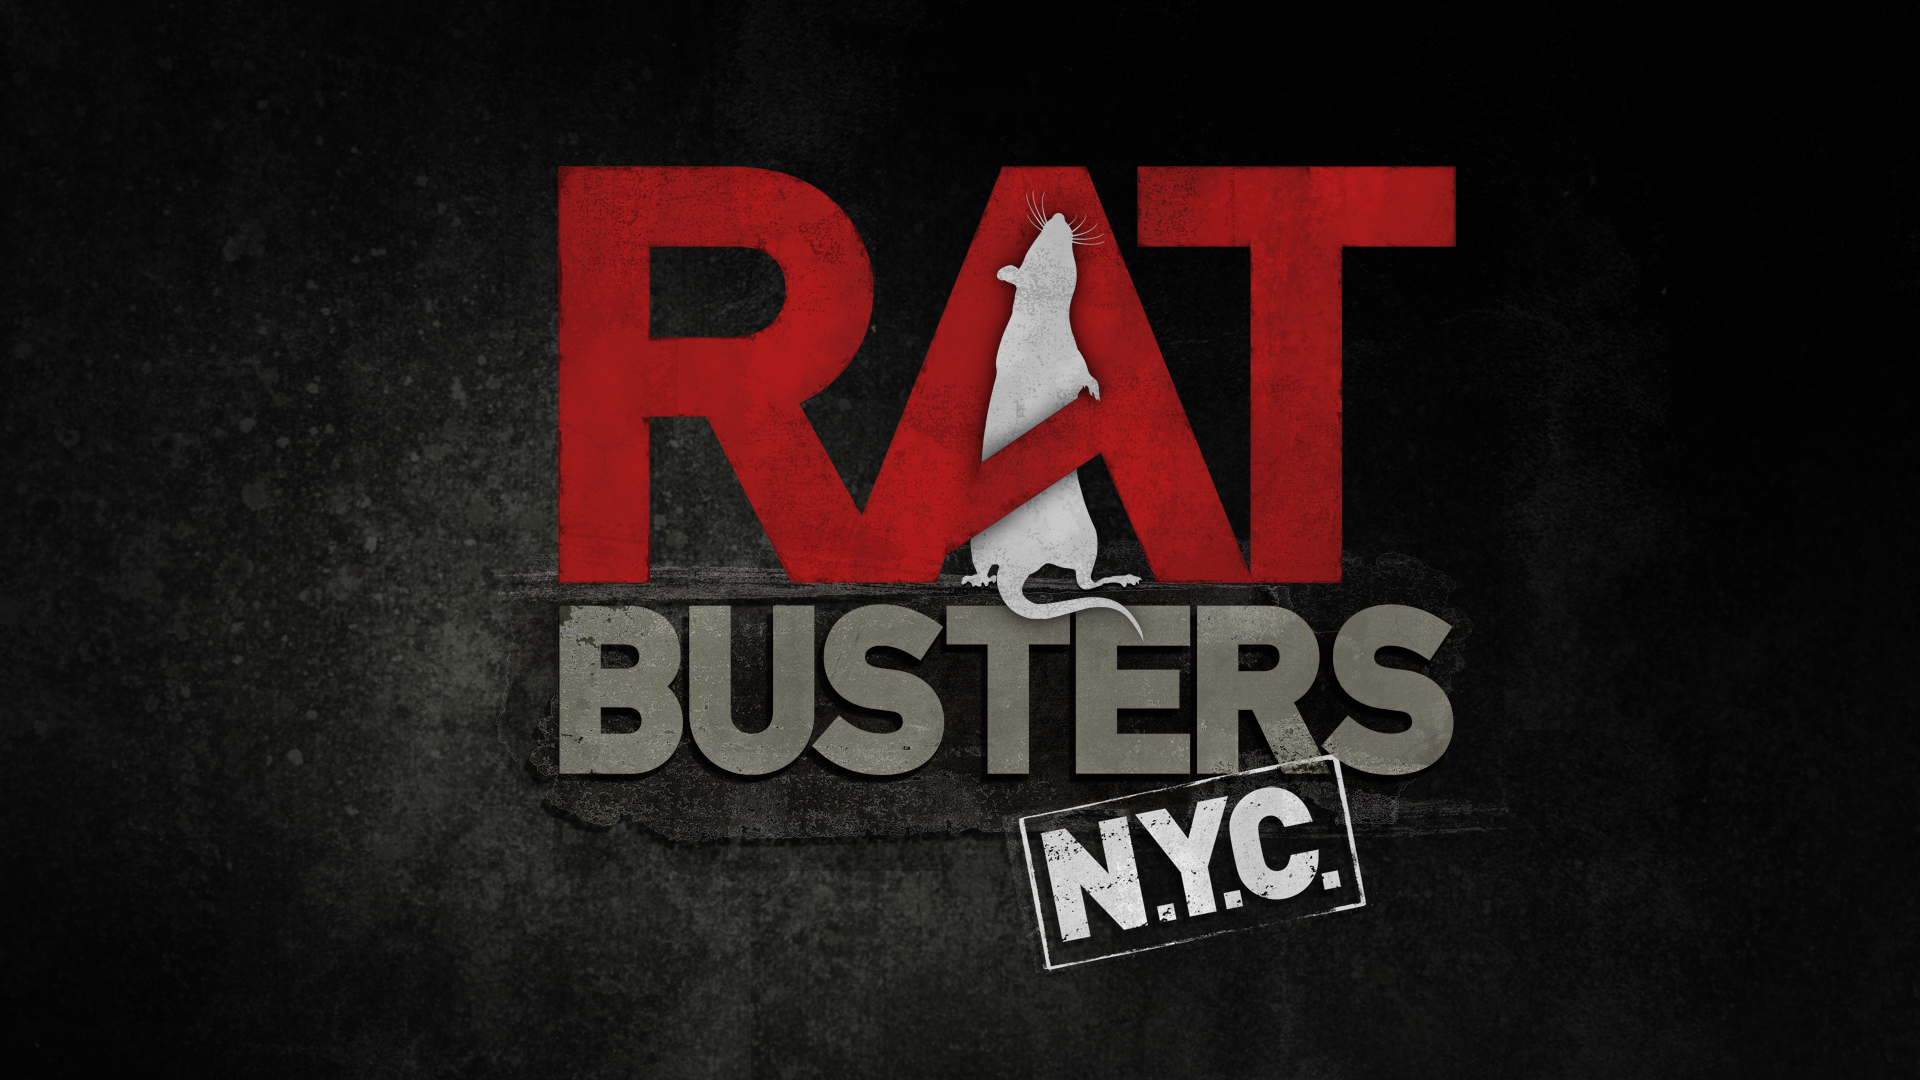 Rat Busters NYC<br><br>Animal Planet<br><i>2011 — 1 Season, 6 episodes</i>